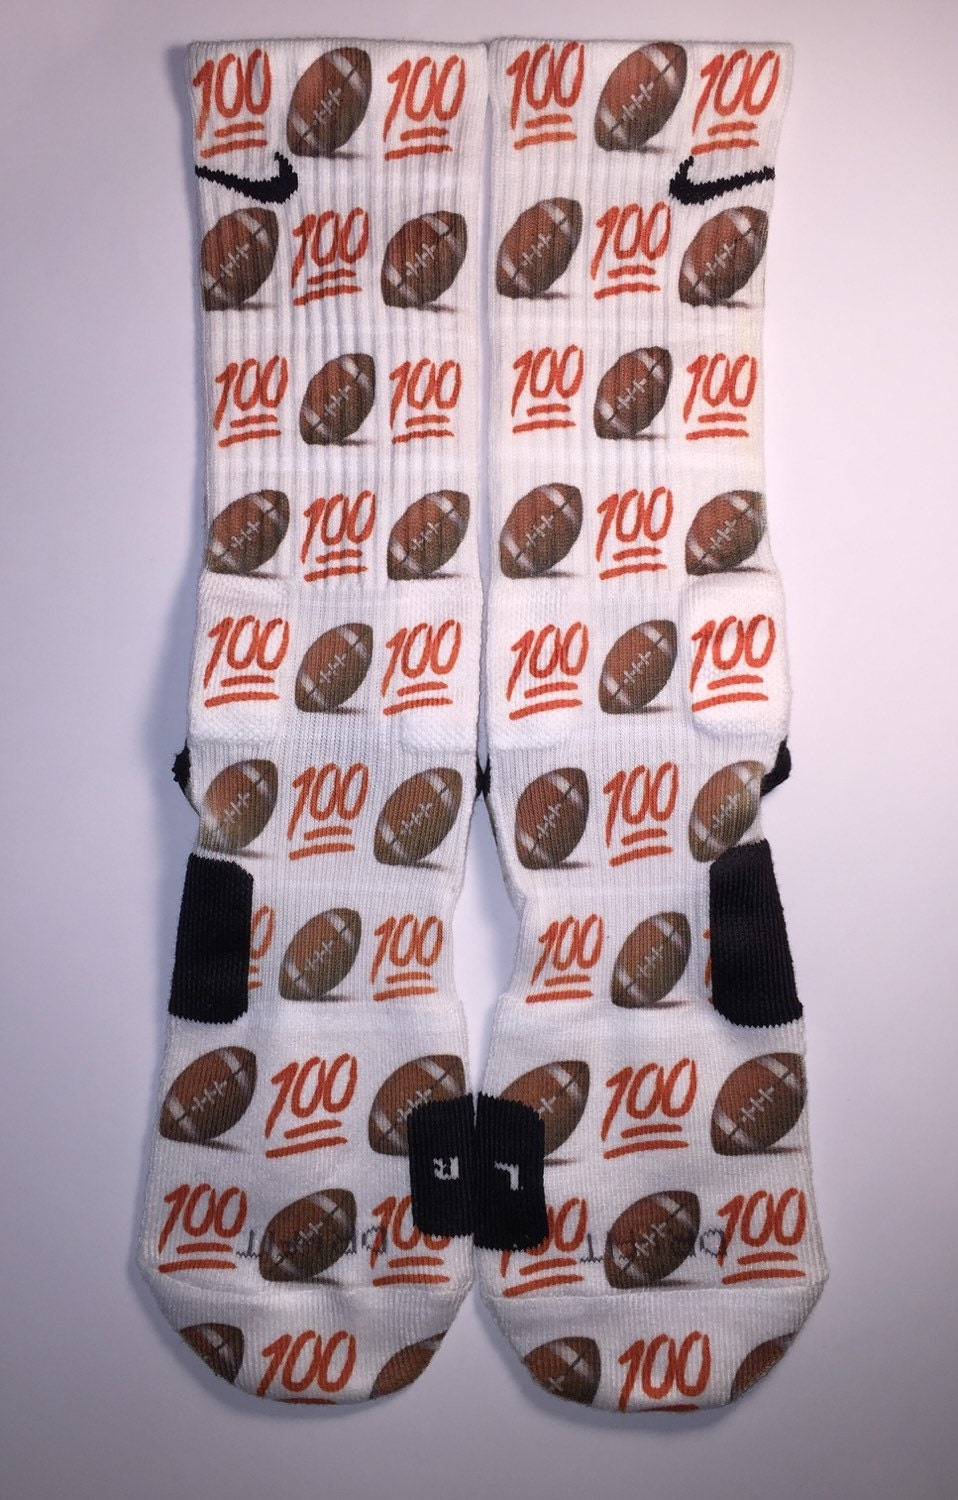 emoji 100 football socks